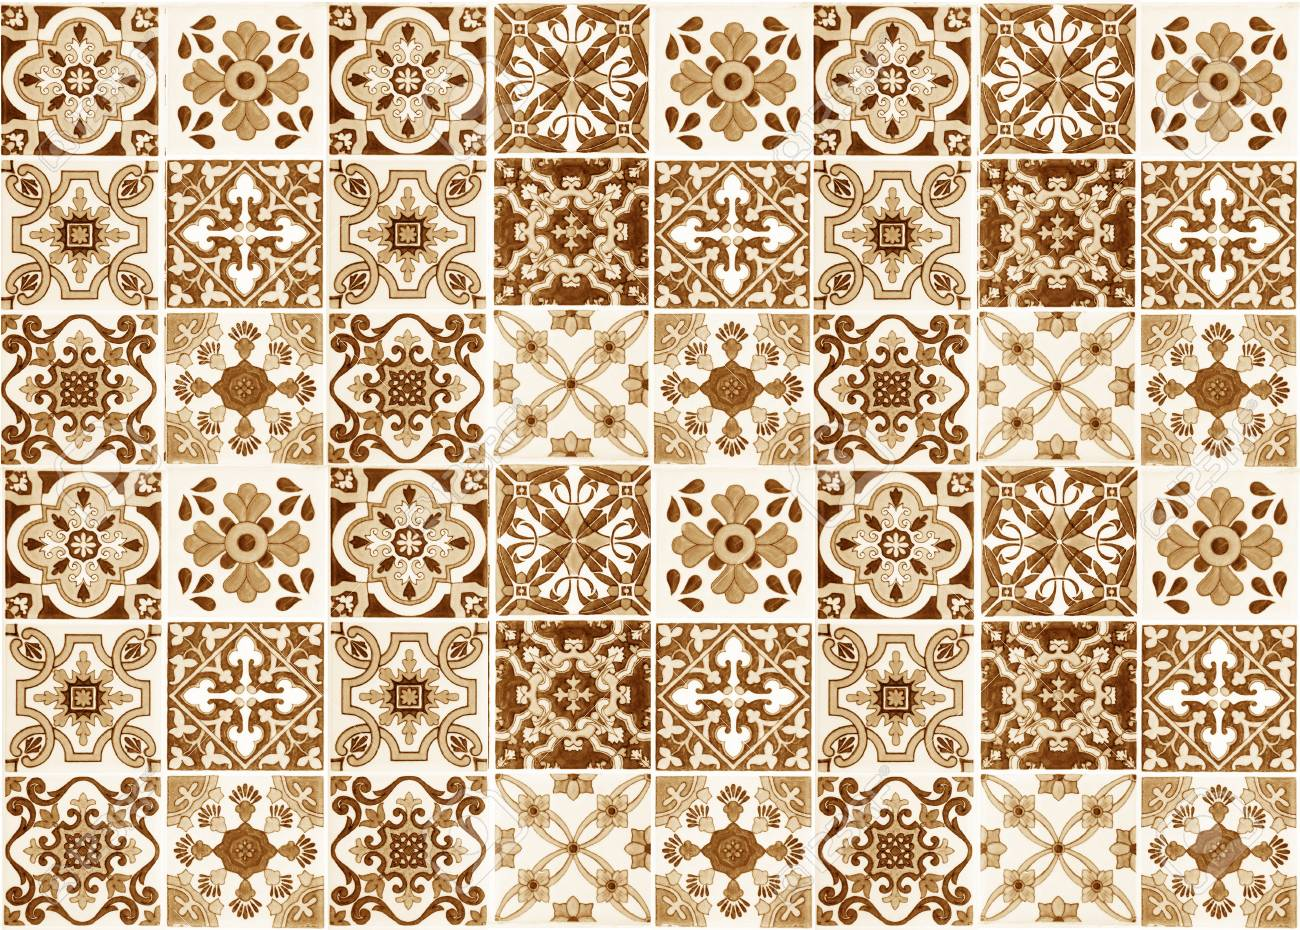 Colorful Vintage Ceramic Tiles Wall Decoration Turkish Ceramic Stock Photo Picture And Royalty Free Image Image 109086932